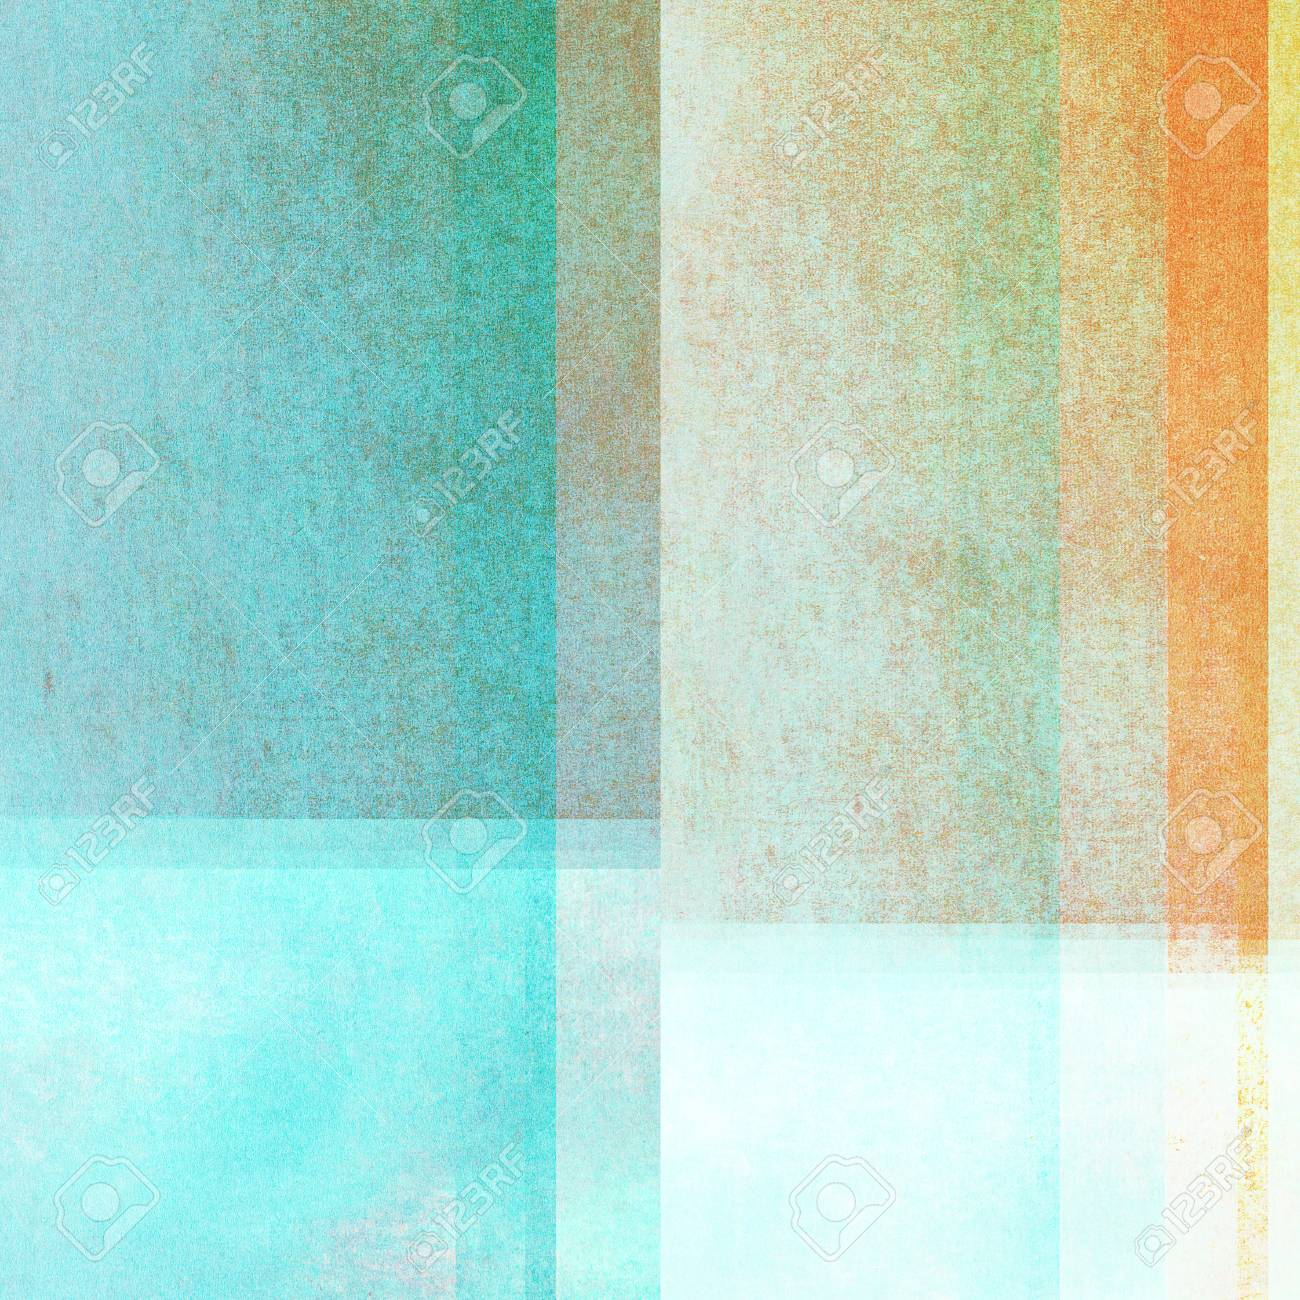 Textured Abstract Background Earthy Colors Graphic Design Stock Photo Picture And Royalty Free Image Image 95139146